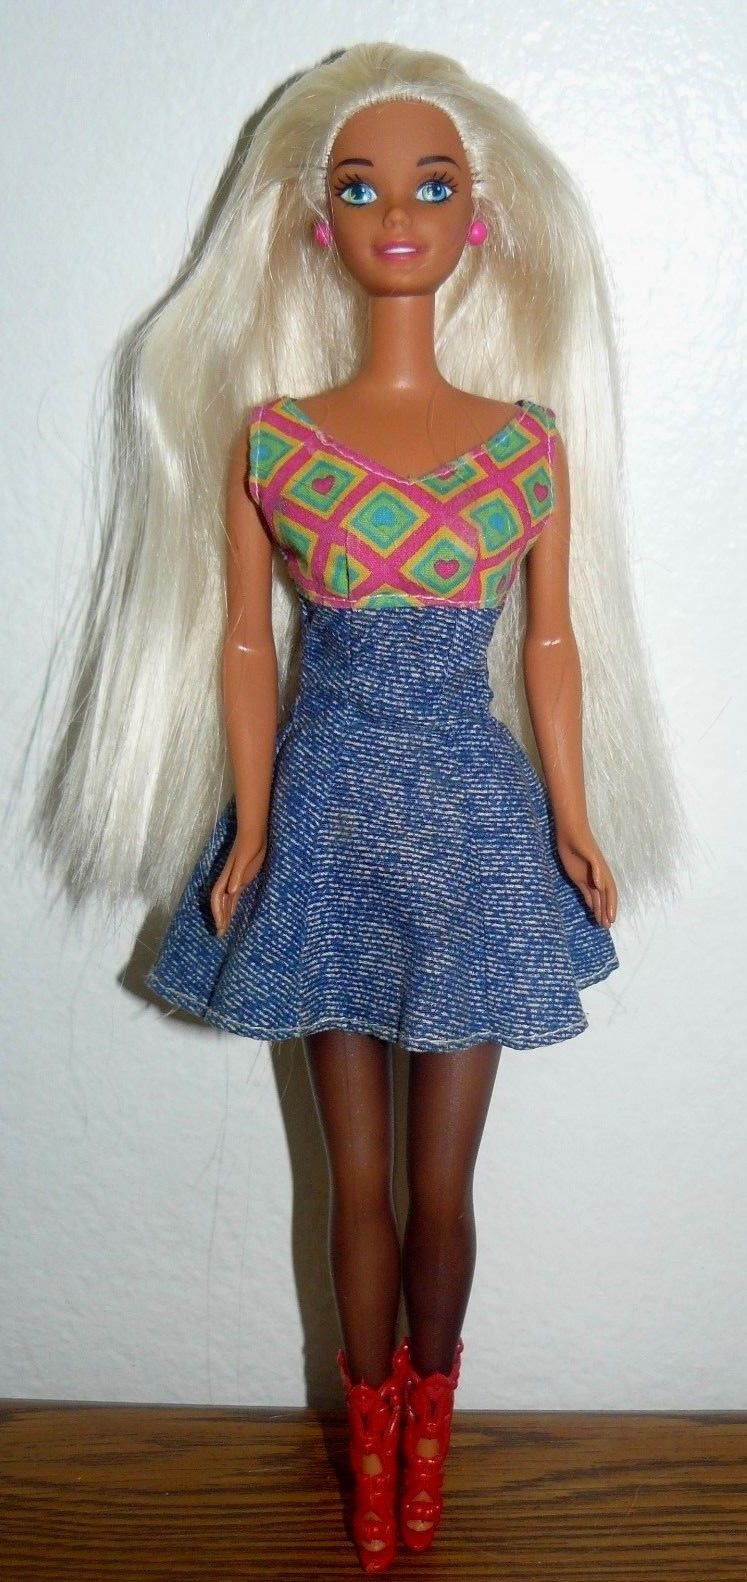 3c109fb667ca Mattel Barbie Twist N Turn Dark painted legs and 50 similar items. S l1600